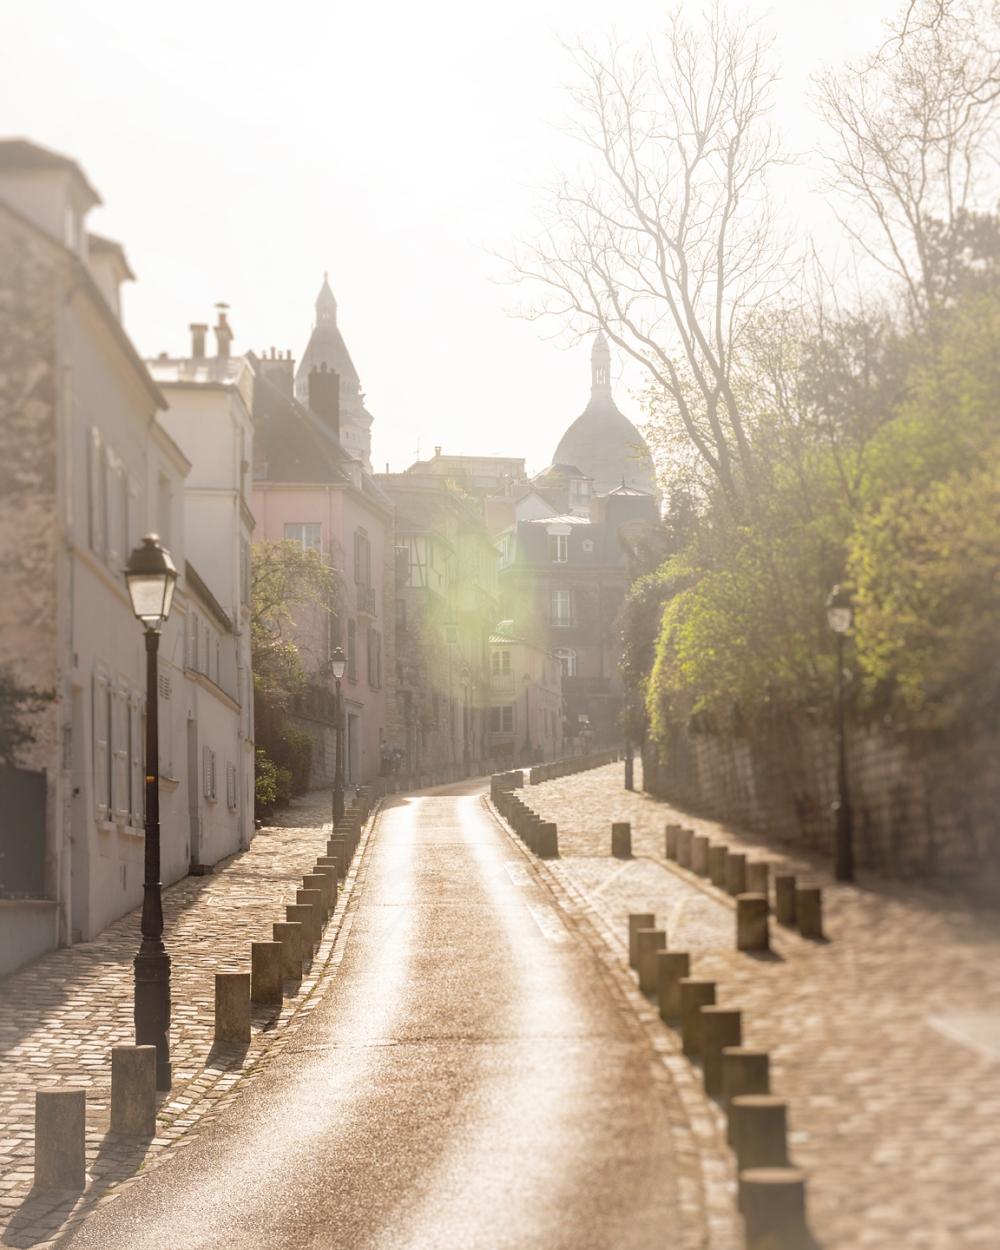 A morning walk along a winding road leading up to Sacré-Cœur which is in silhouette in the background by Chicago artist Tracey Capone